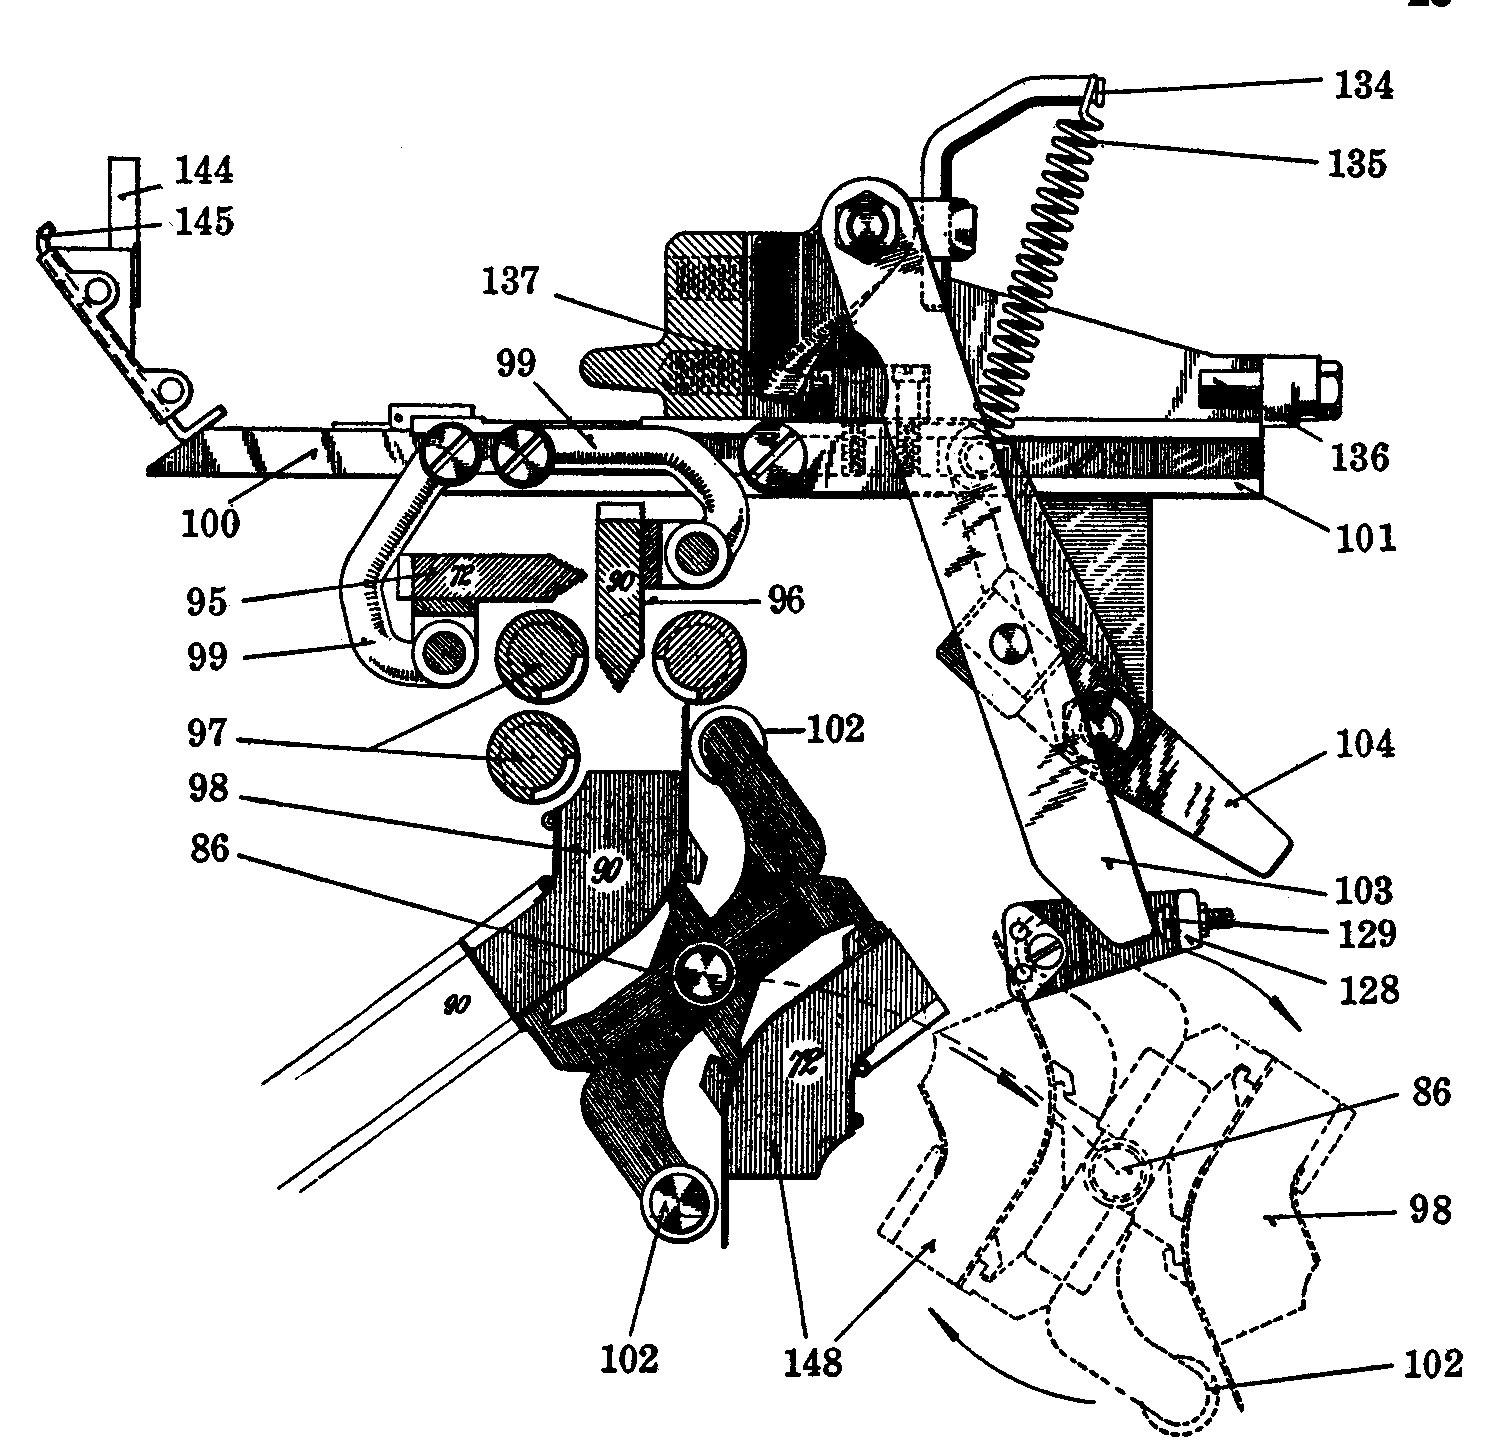 How Many Syringe Does A Jaws Of Life Have Jaws Life Diagram Of How Many Syringe Does A Jaws Of Life Have